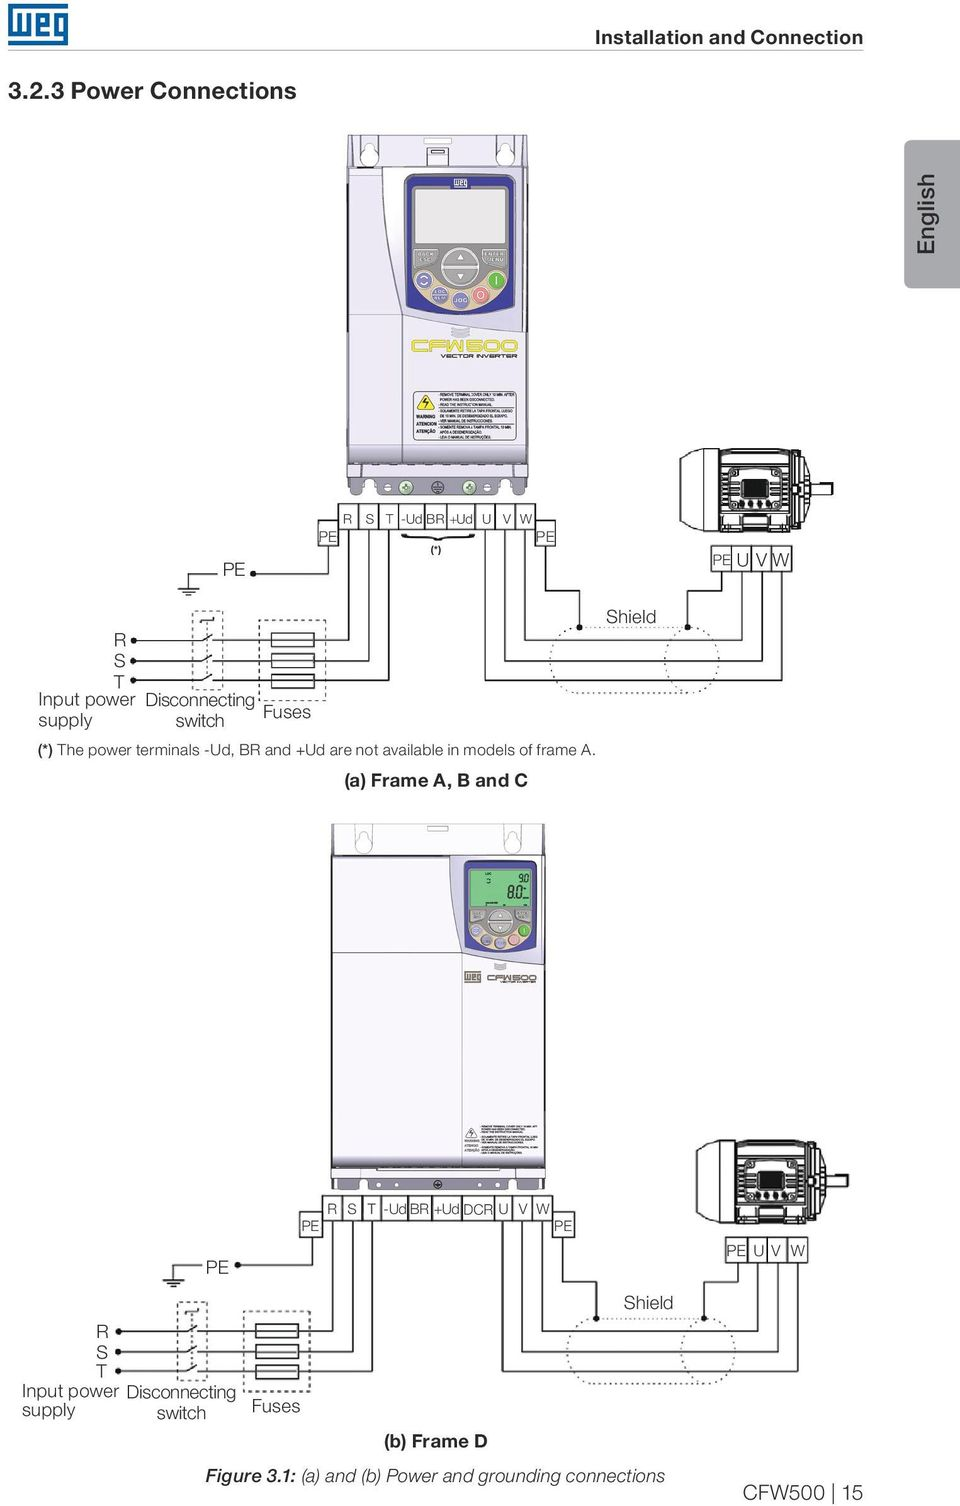 switch Fuses (*) The power terminals -Ud, BR and +Ud are not available in models of frame A.